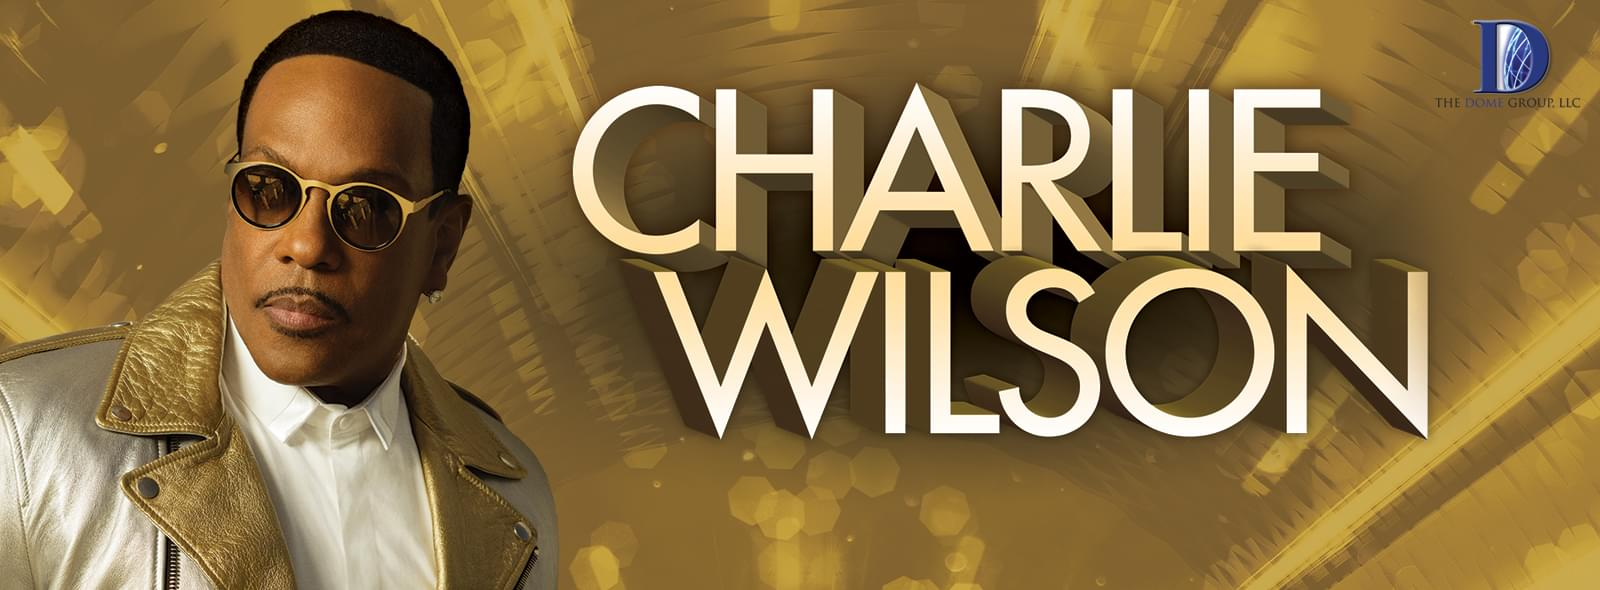 Charlie Wilson The Best Concert Party Ever